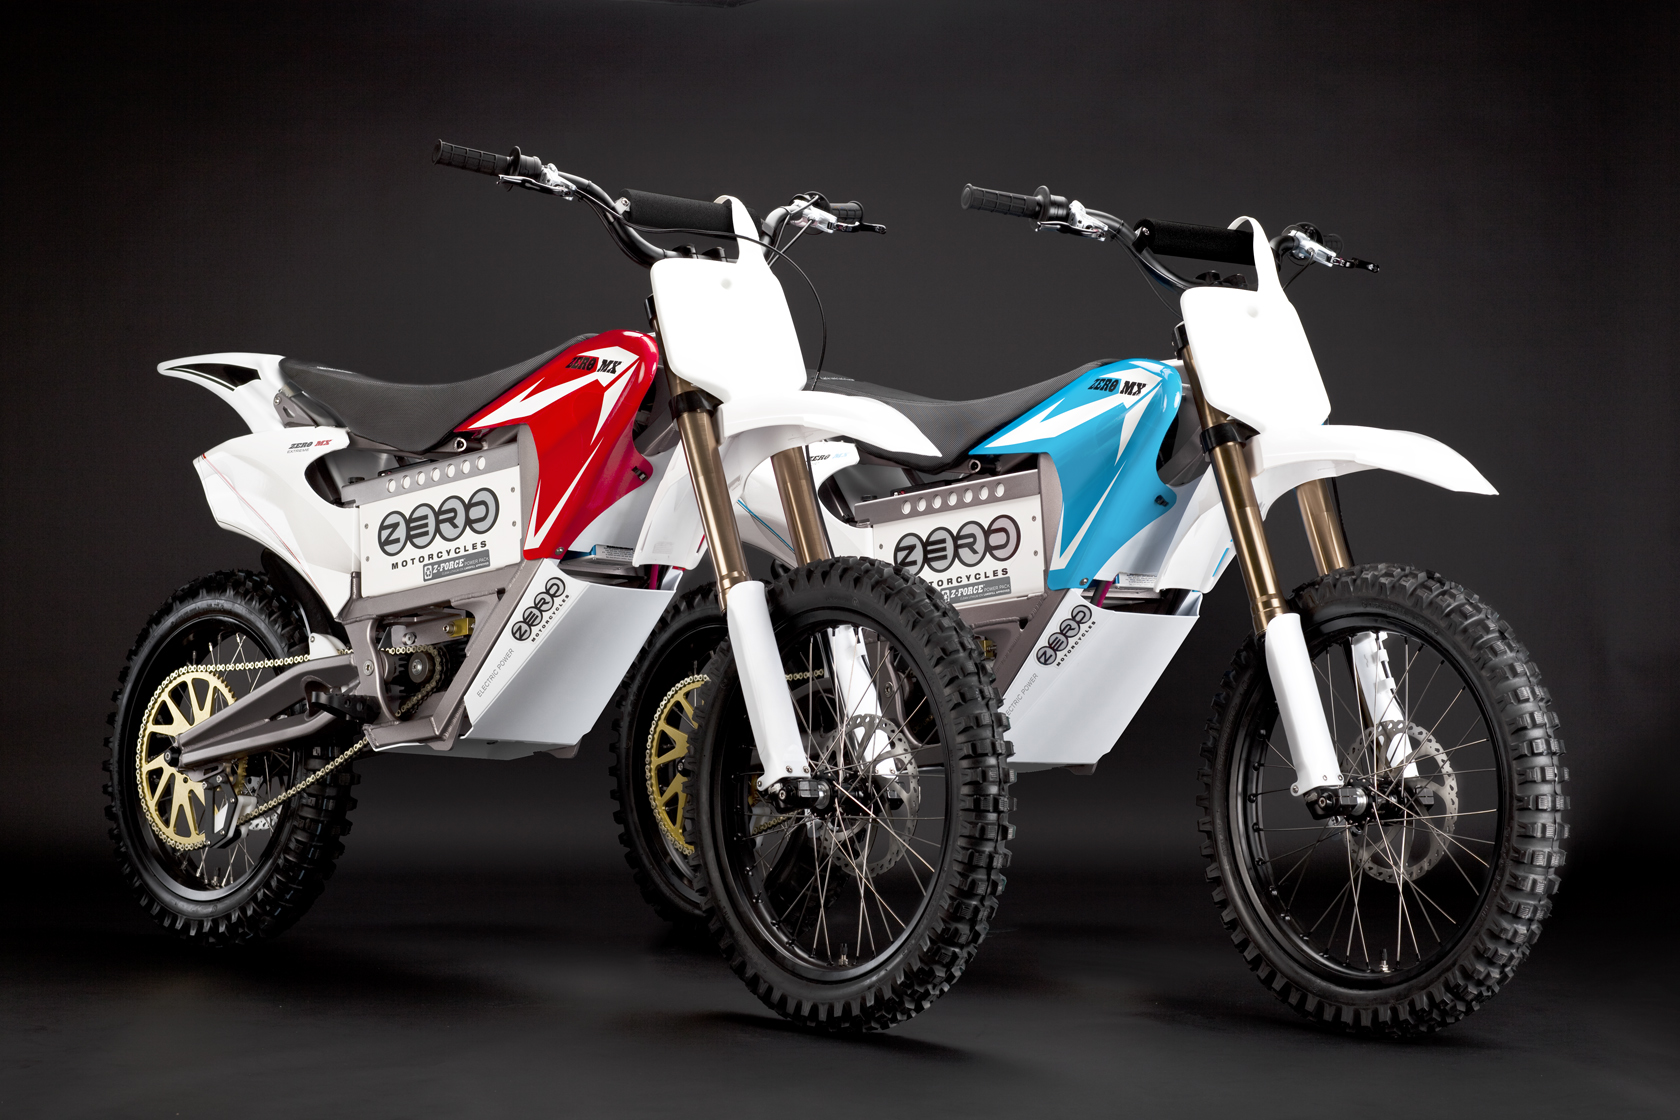 '.2010 Zero MX Electric Motorcycle: Pair.'